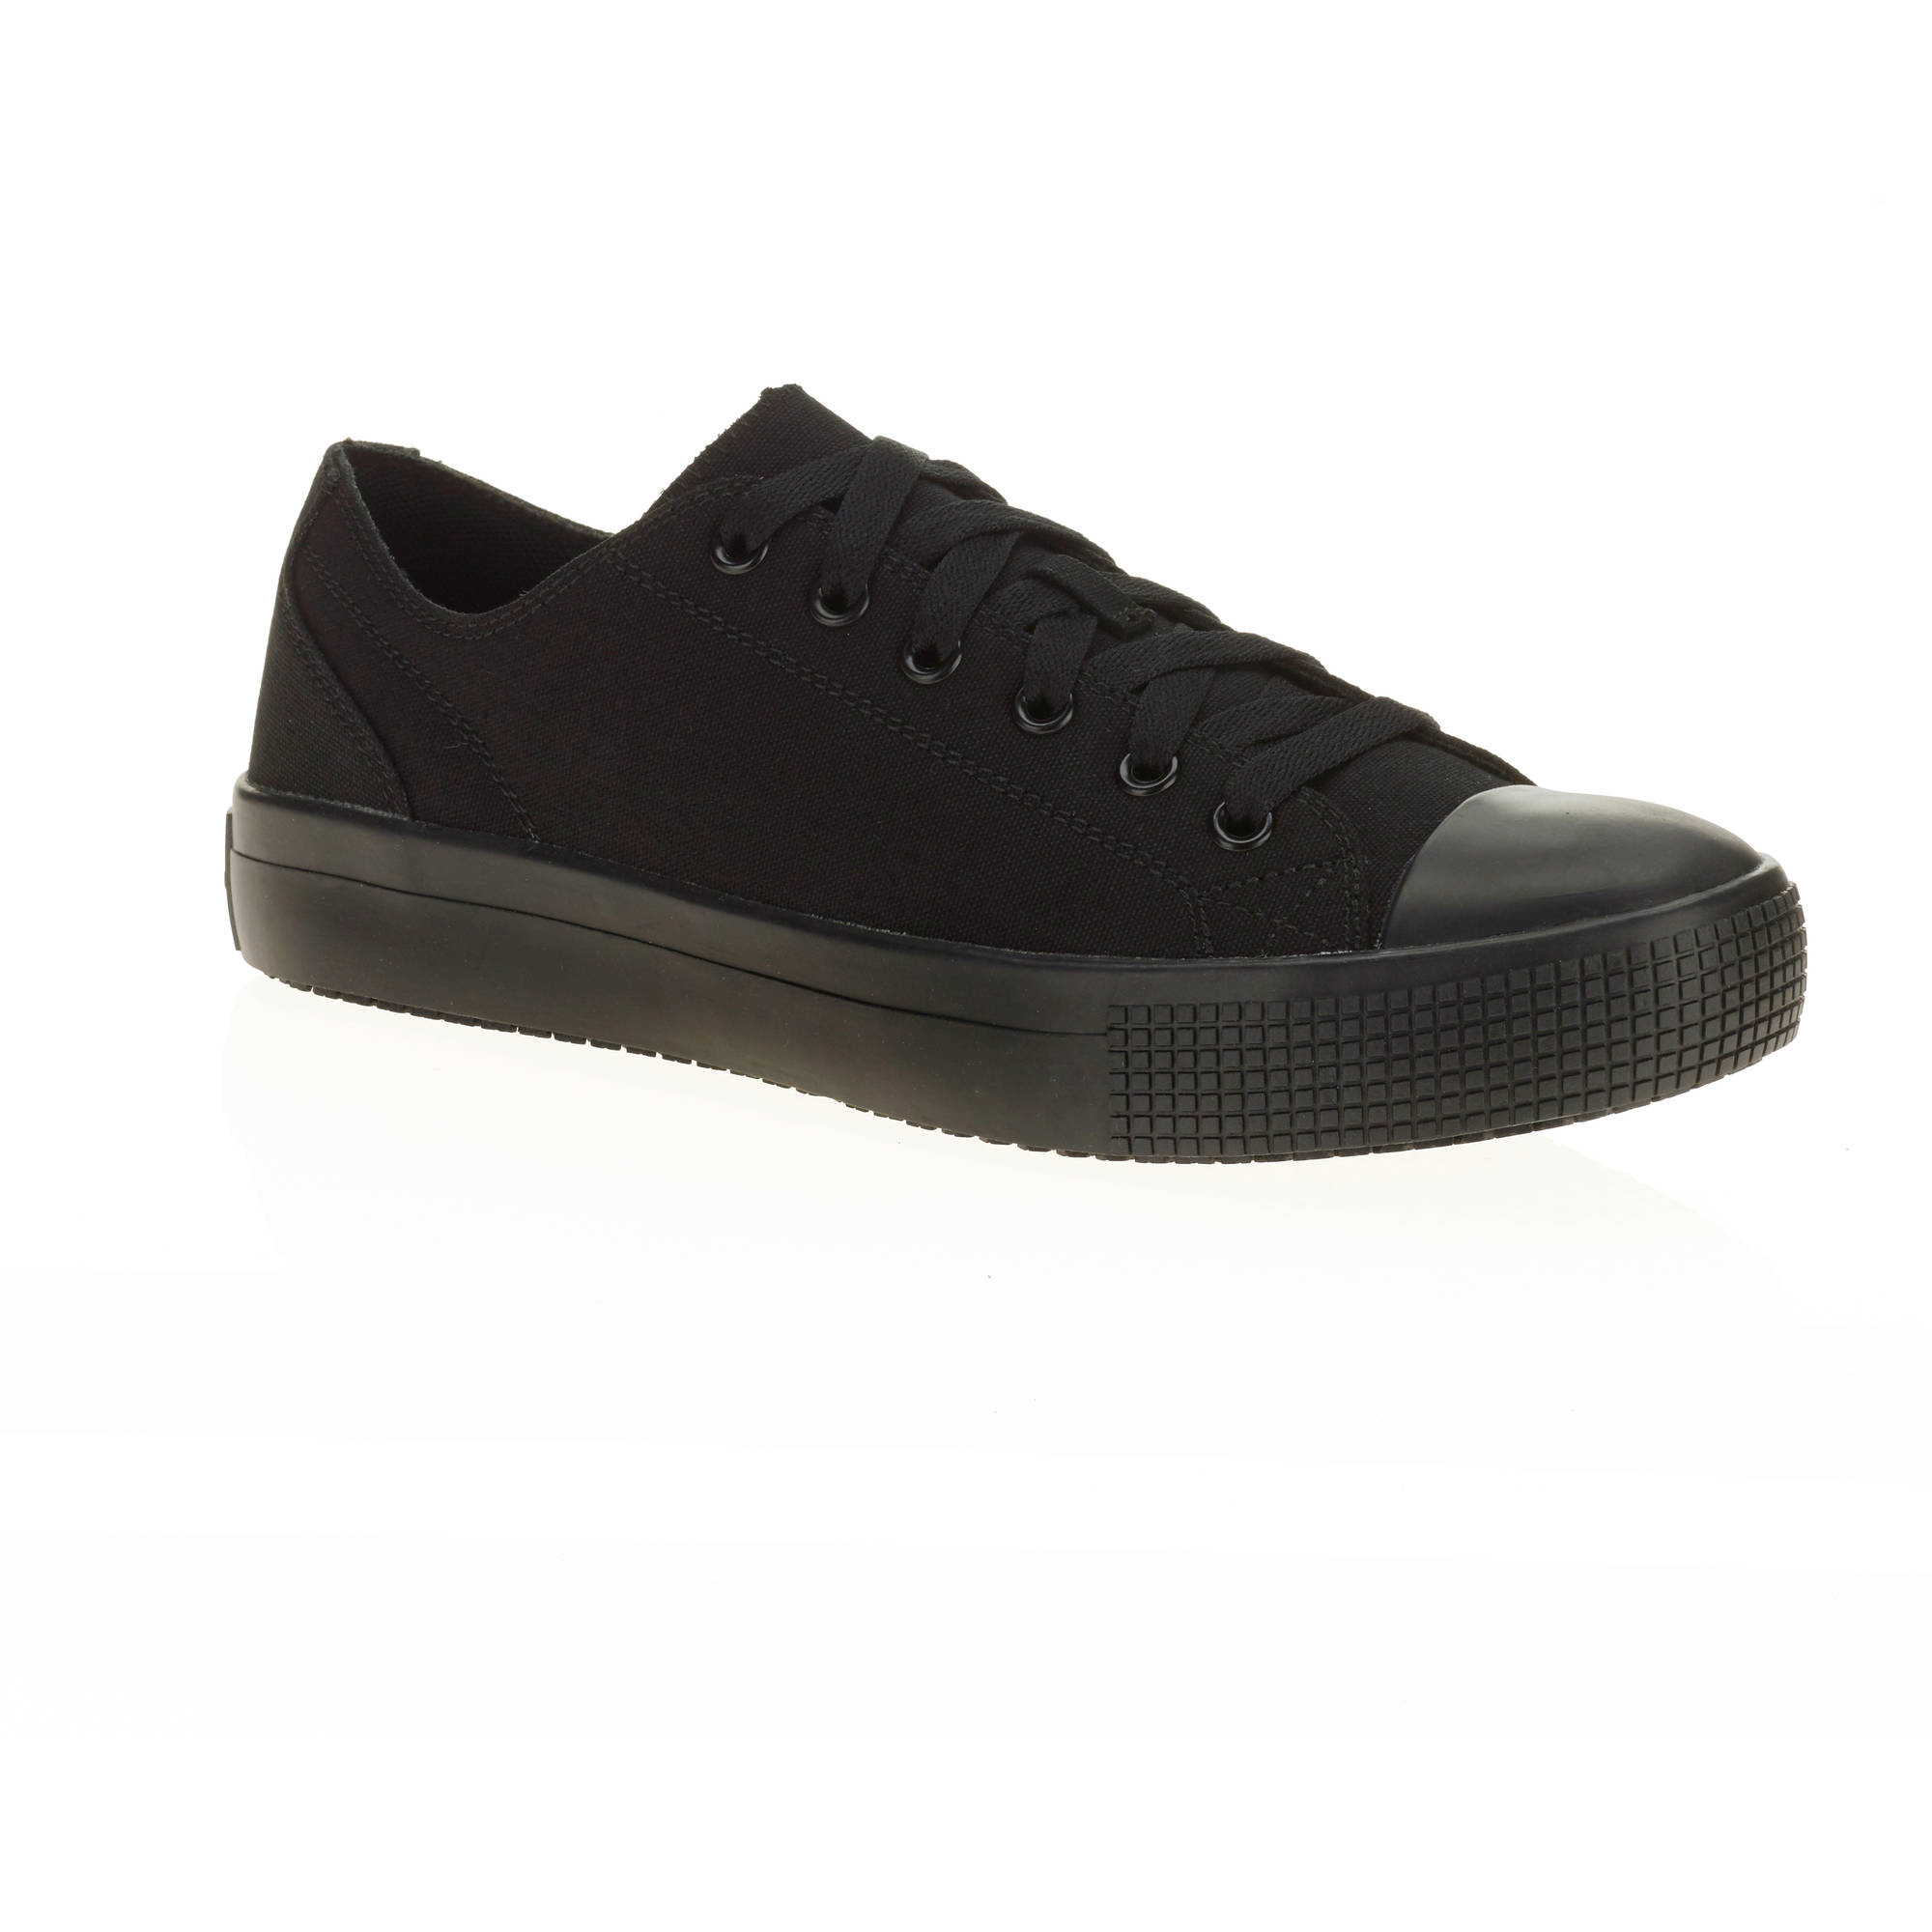 shoes for kitchen workers flooring options converse style guru fashion glitz